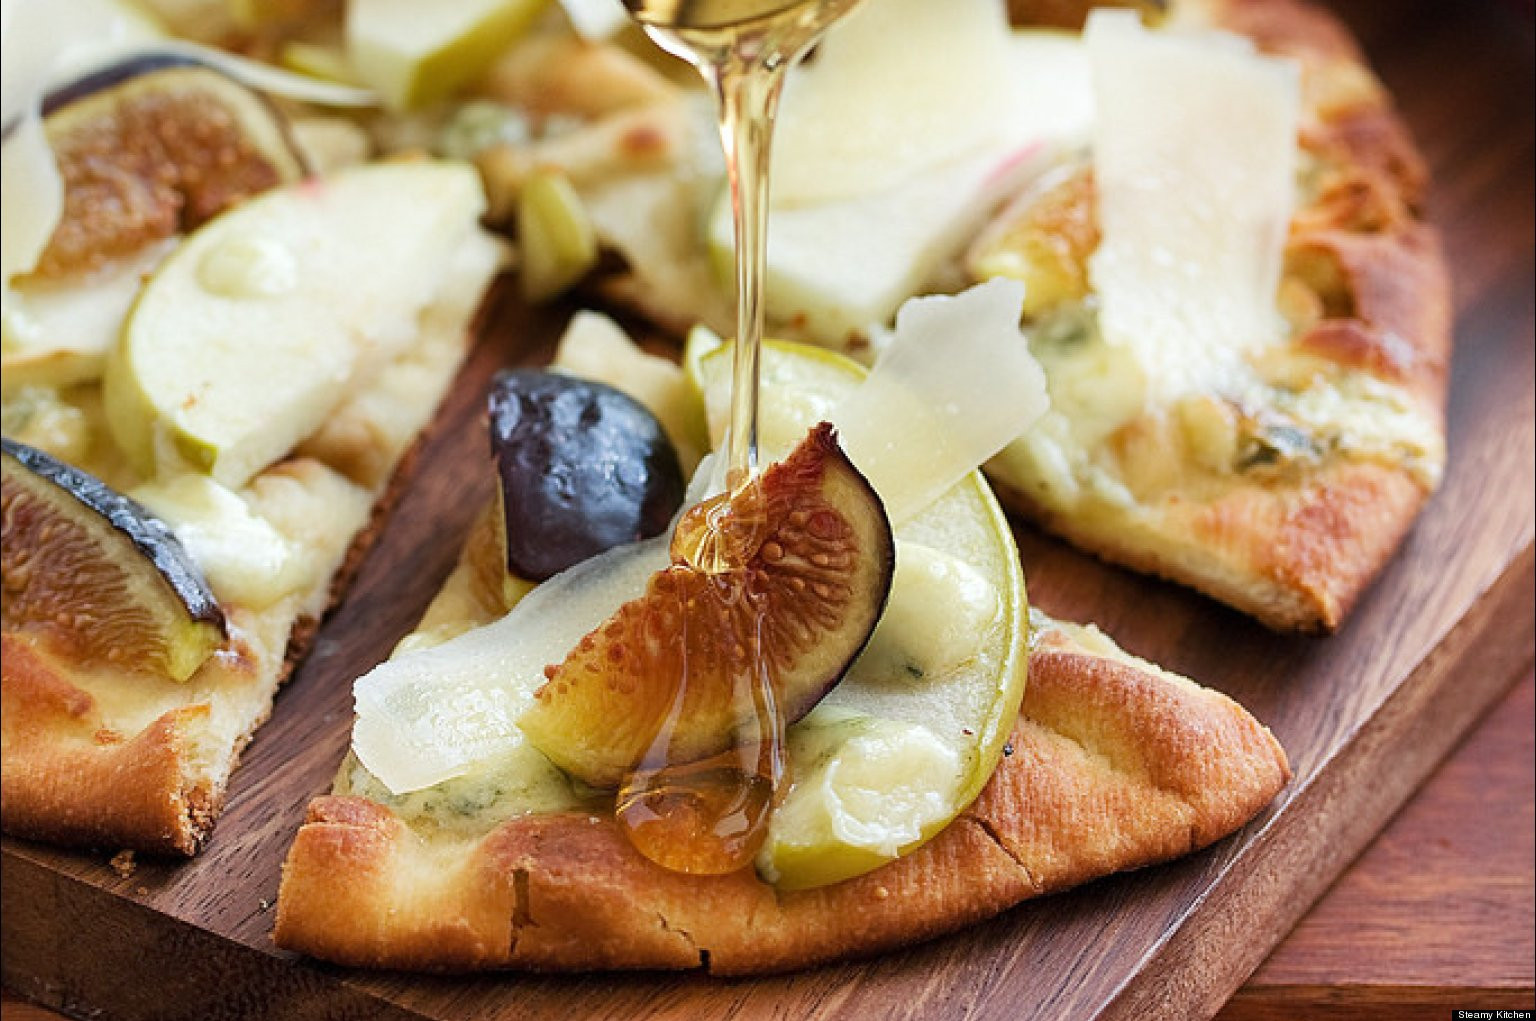 Healthy Holiday Appetizers  Healthy Appetizer Recipes For Holiday Entertaining PHOTOS